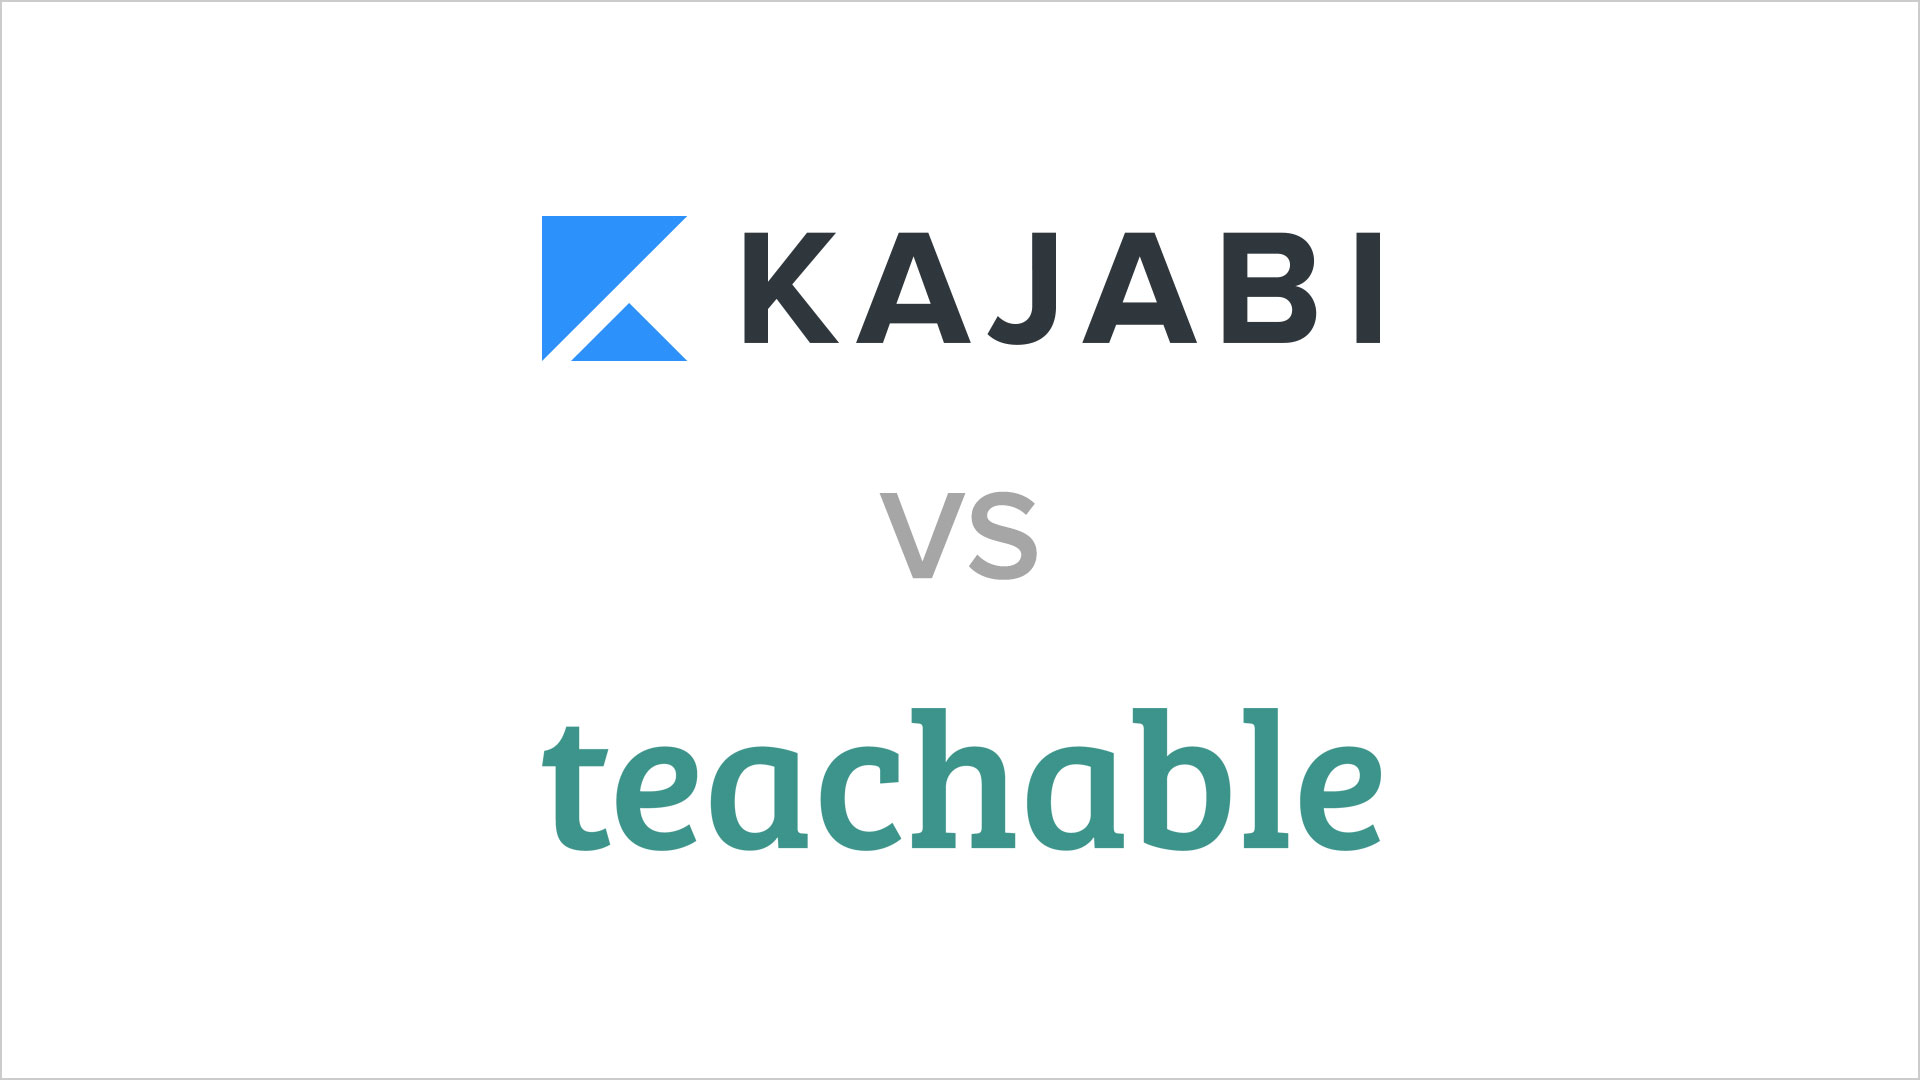 Best Online Course platform - Kajabi vs Teachable